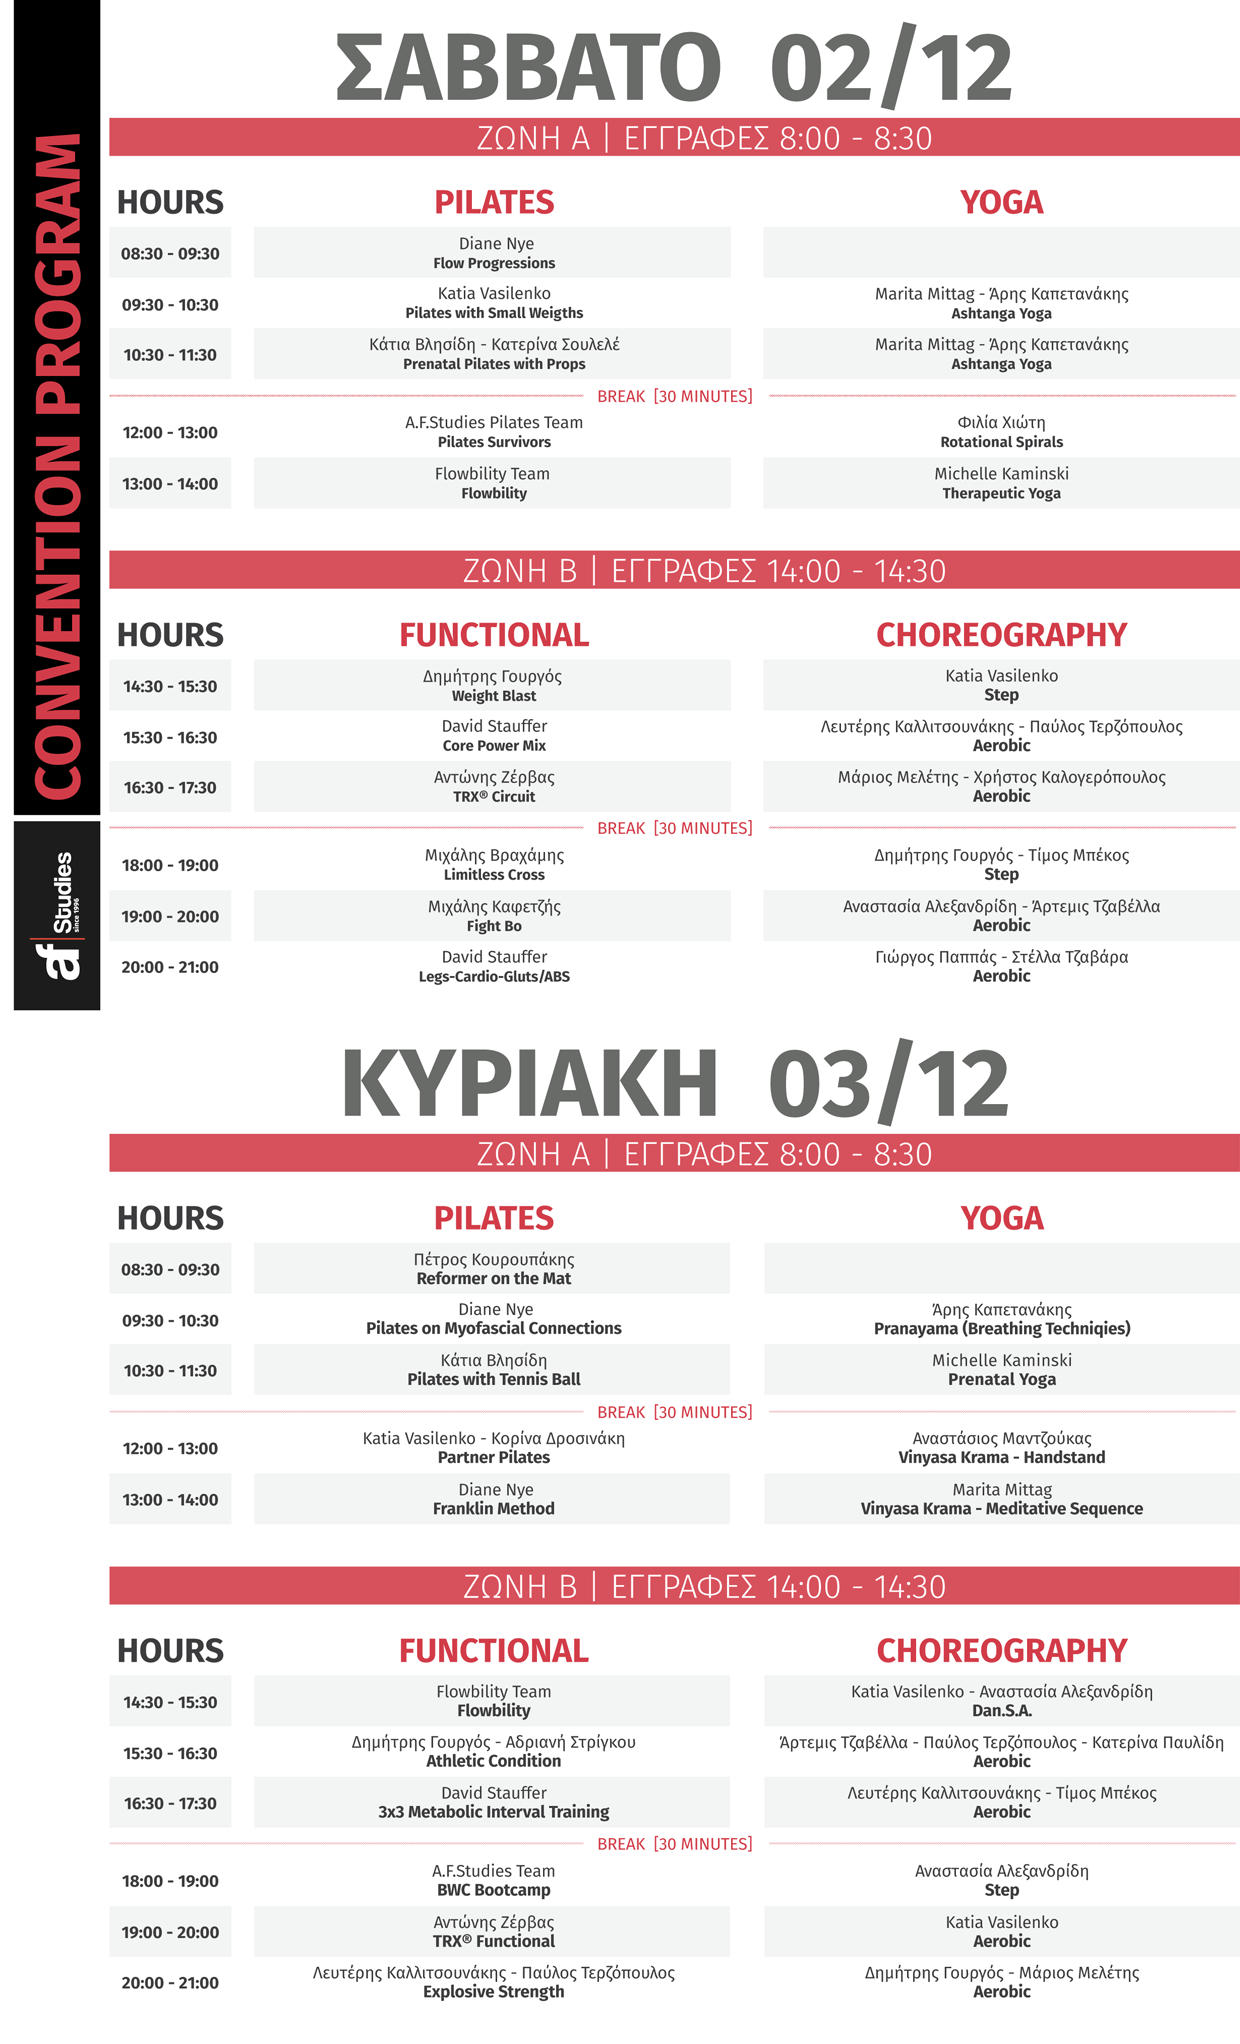 22nd Fitness Convention by A.F. Studies - Πρόγραμμα